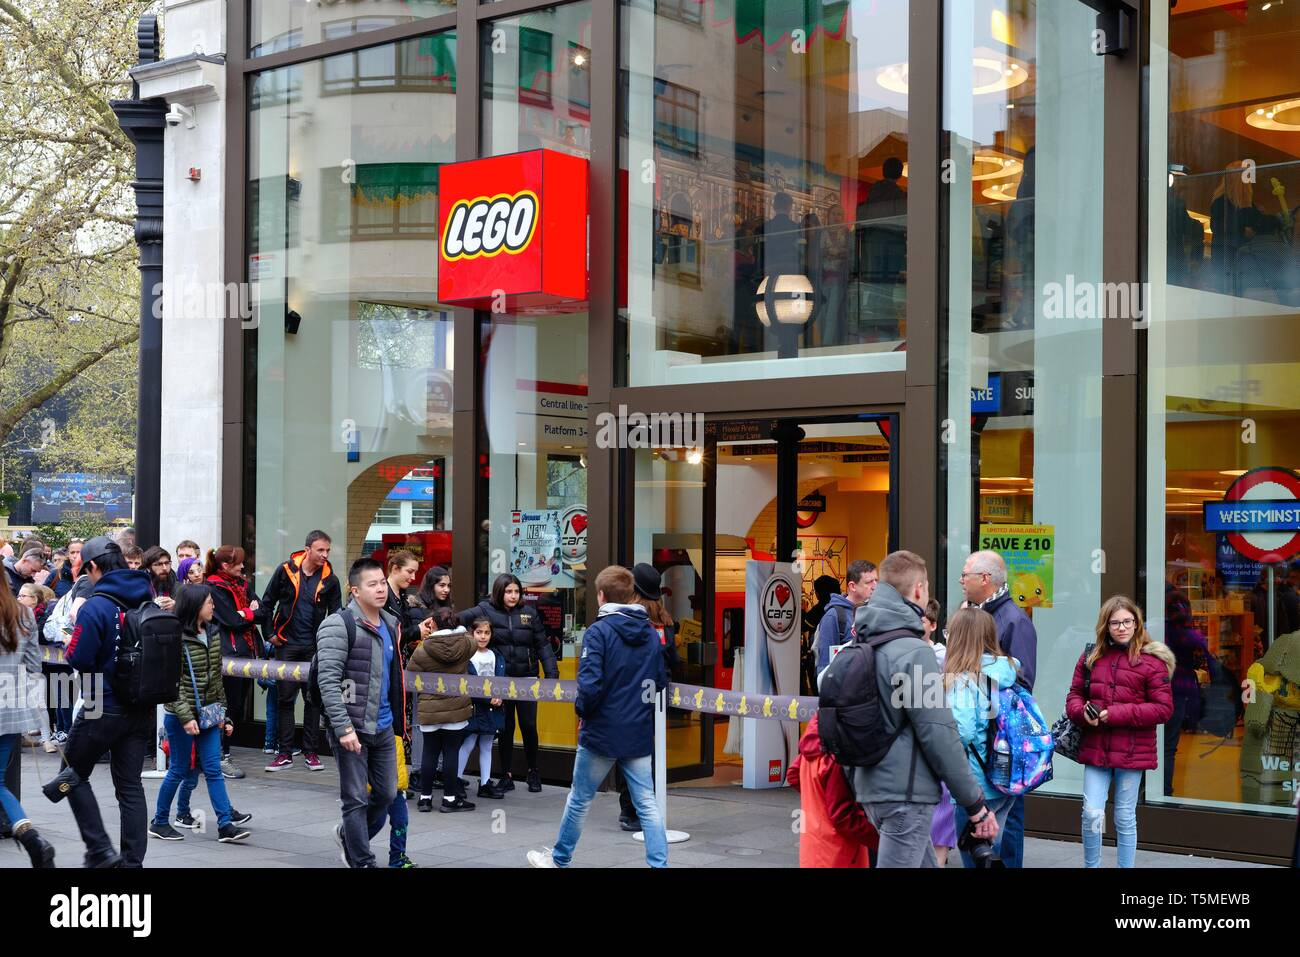 Exterior of the Lego store in Leicester Square Central London England UK - Stock Image